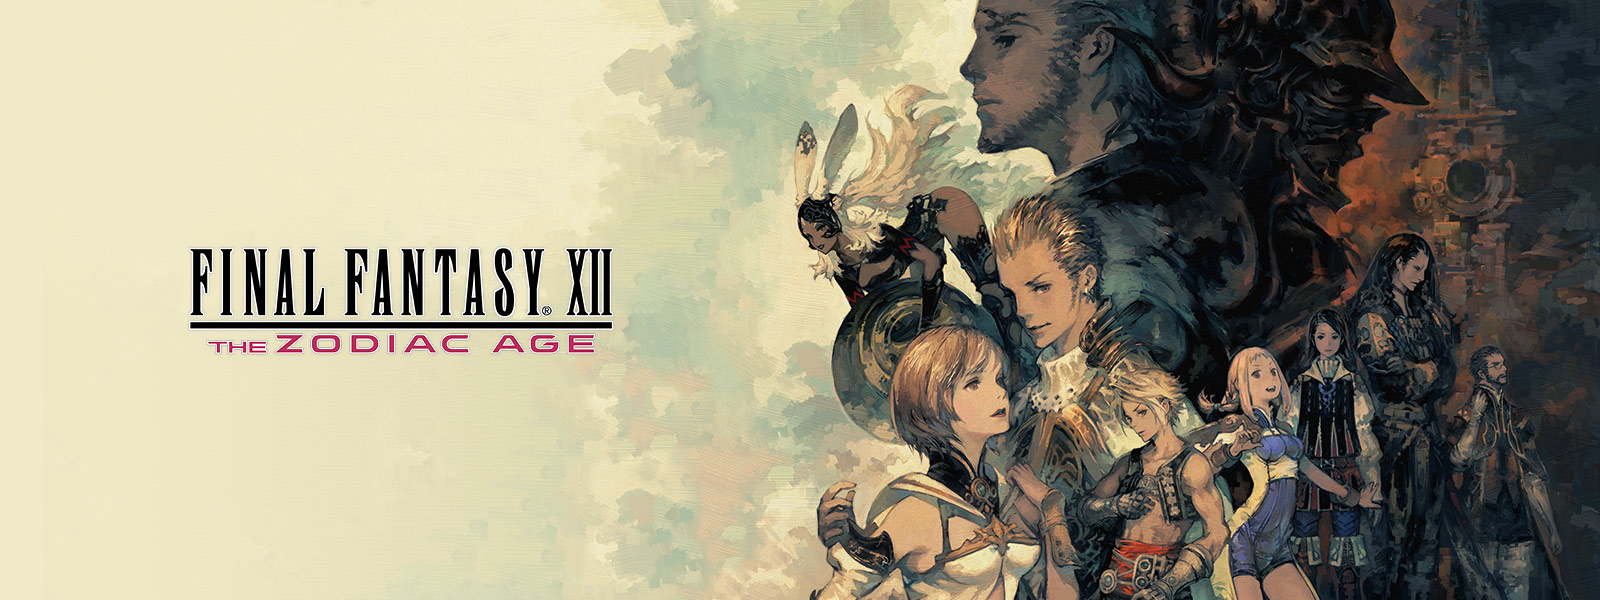 Montasje av karakterer fra FINAL FANTASY XII THE ZODIAC AGE